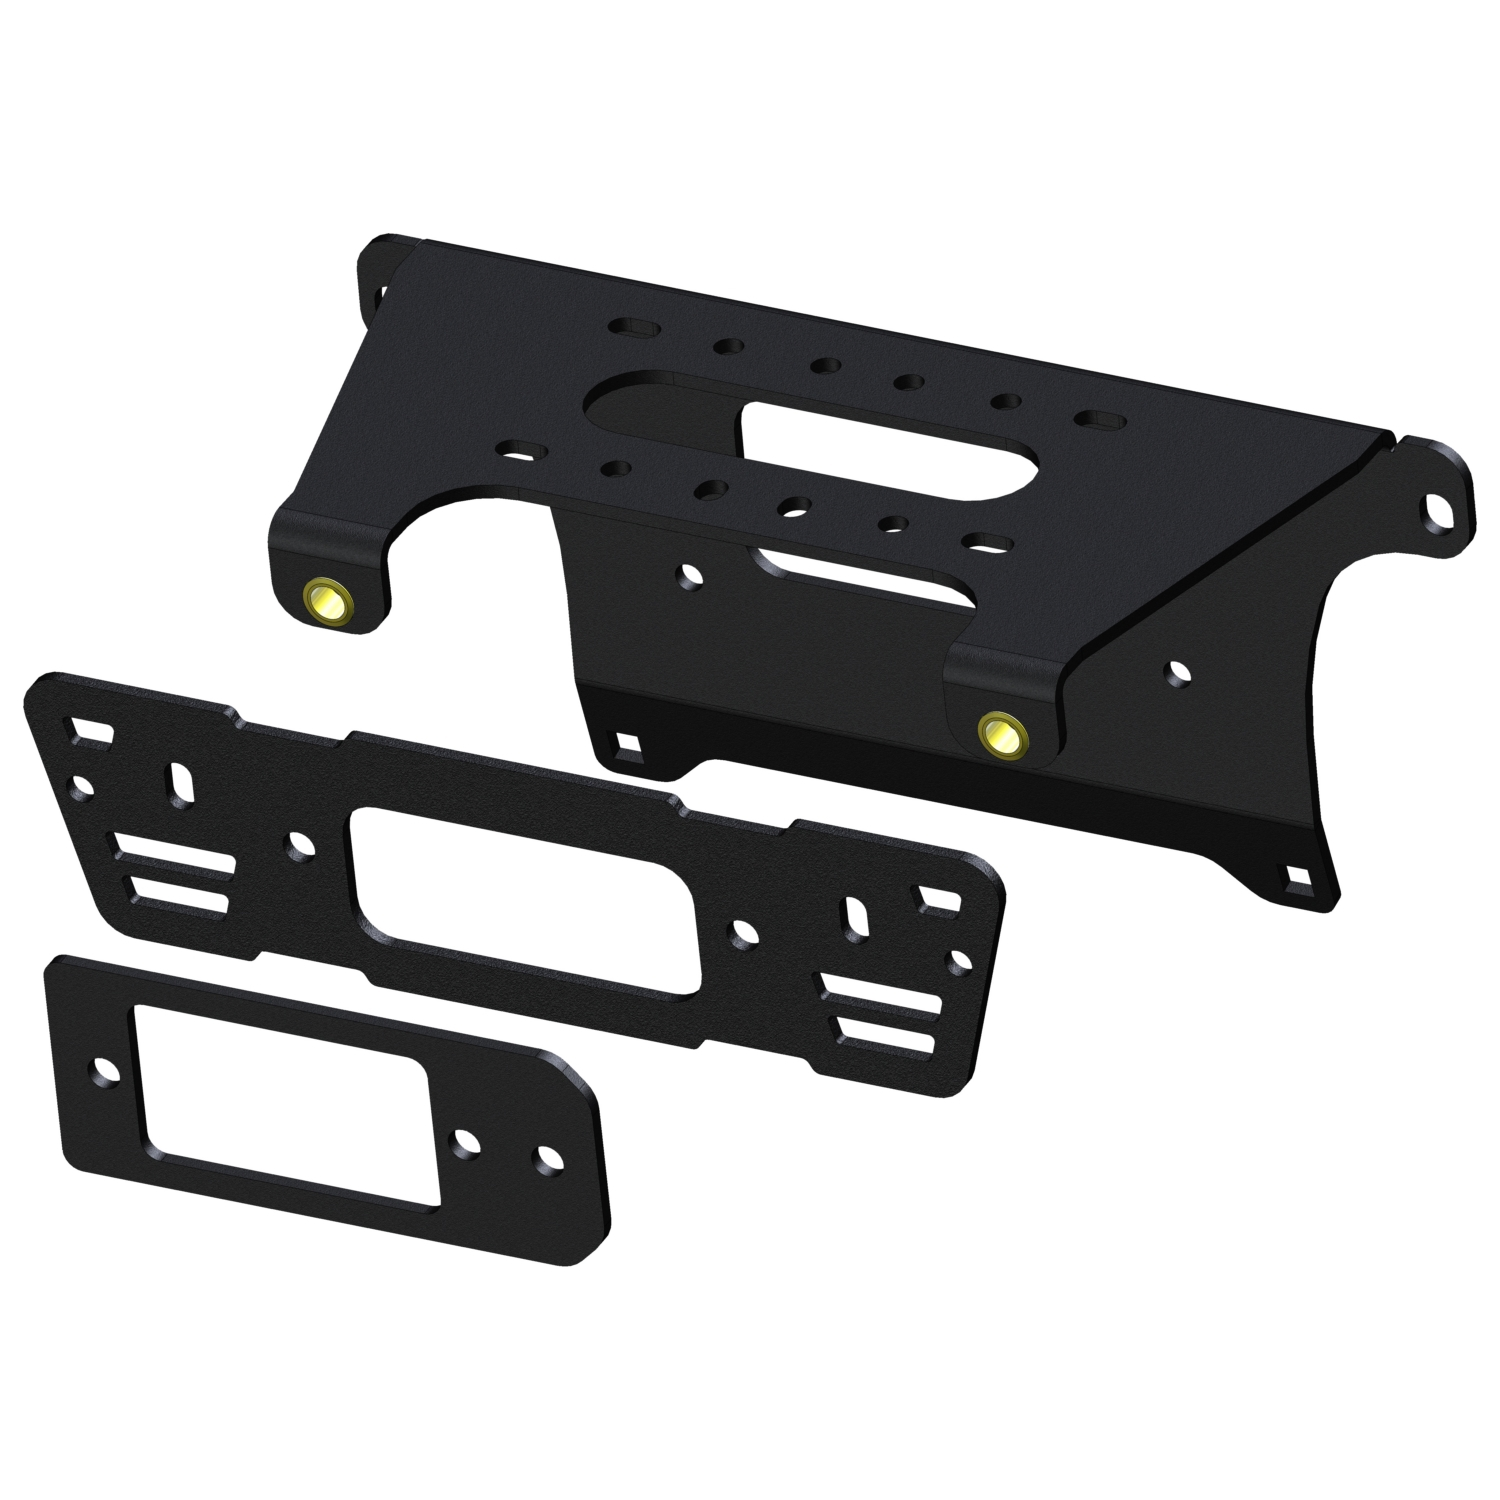 2017 Polaris Ranger Crew 900 Winch Mount Standard and Wide 101345